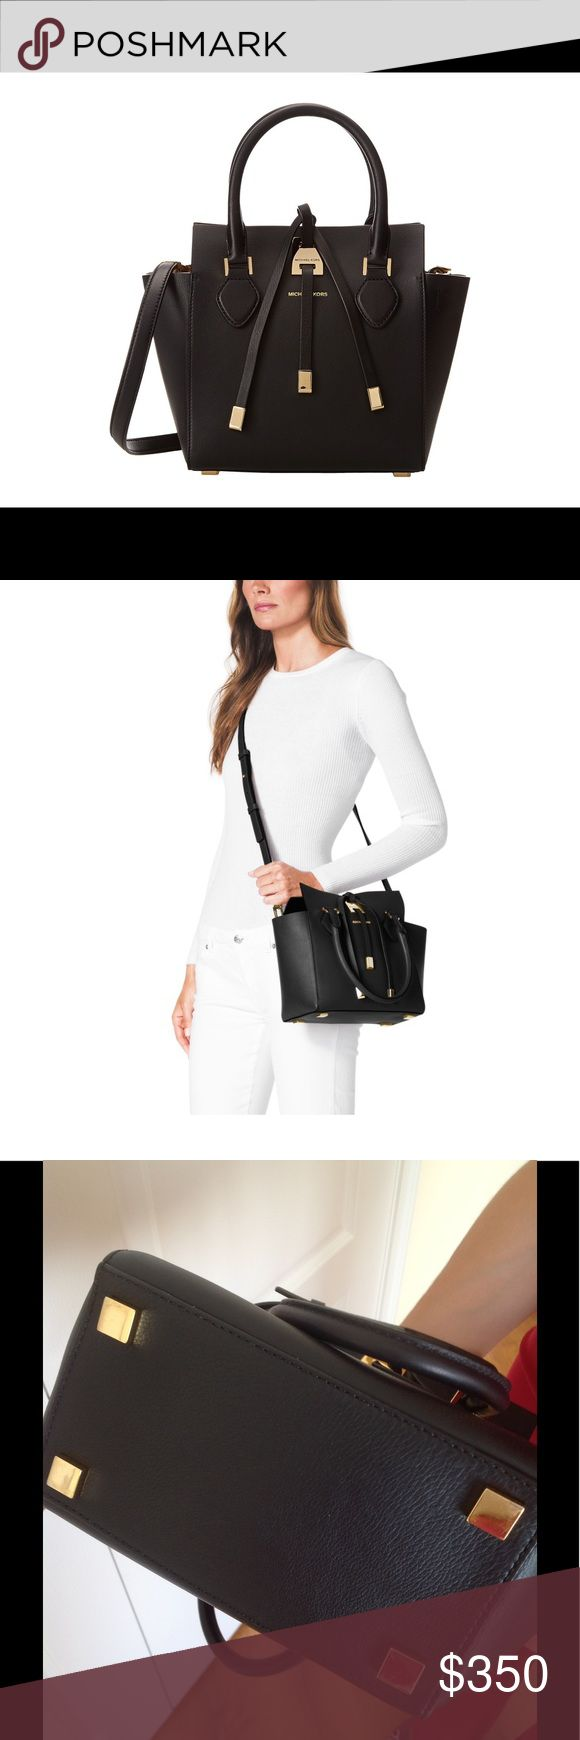 Michael Kors Collection Miranda Tote XS Authentic black tote from Michael Kors' luxury collection. Authentic and European-made and a favorite amongst celebrities. Genuine leather and suede interior, this classic black bag never goes out of style. Comes with shoulder strap for versatility. Can be worn in the crook of your arm or as a cross-body. Imported from Europe. Gold hardware adds amazing accents. Protective feet and 2 pockets inside Michael Kors Collection Bags Crossbody Bags